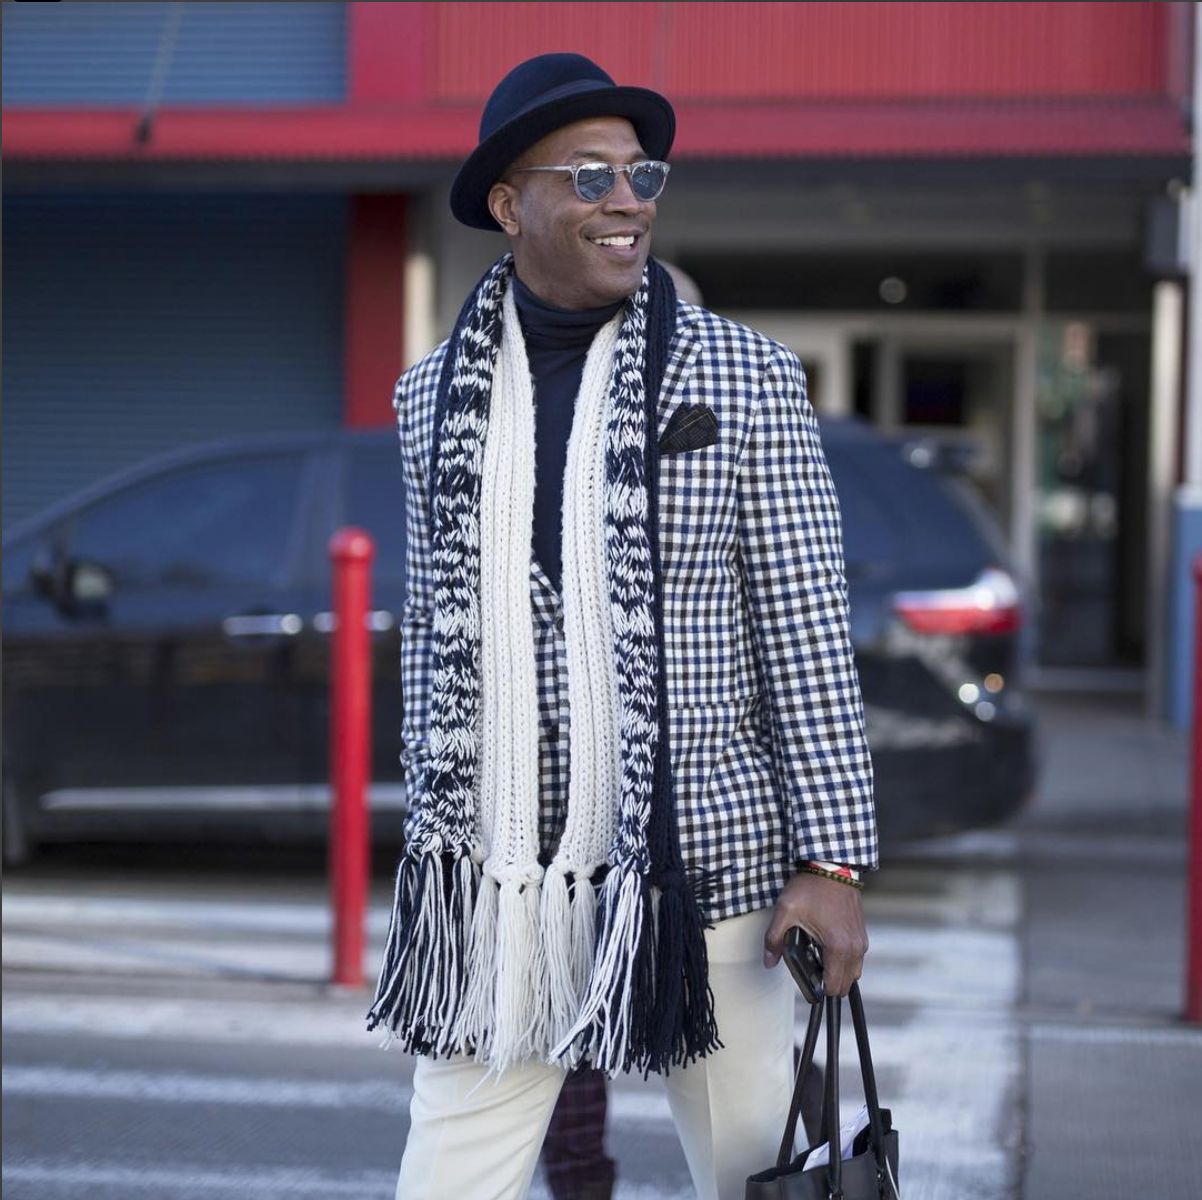 We're totally obsessed with the textures in Barnette's scarf and cool hat. (Image via @thedcfashionfool, photo by @theimpression_)